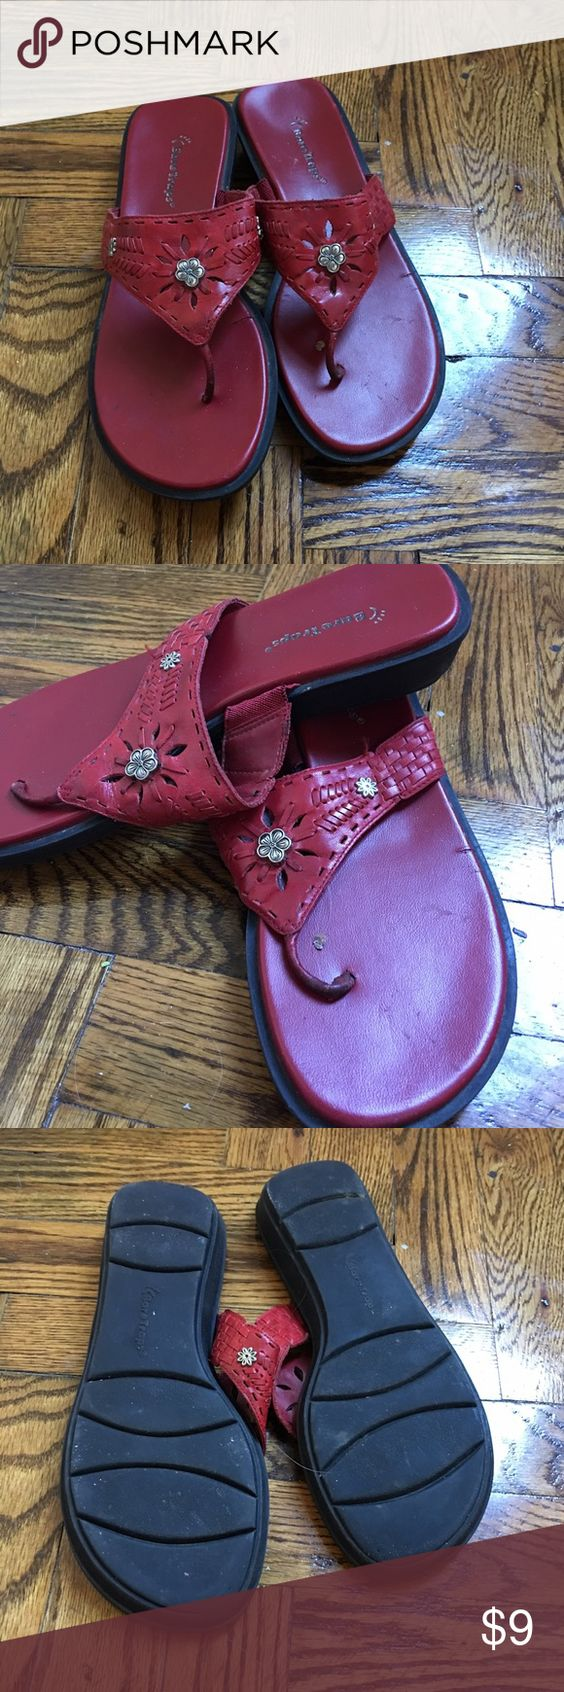 BEAR TRAPS Babble Ladies Leather Sandals Size 8M Red leather upper with rubber sole. Worn a few times this summer. In very good condition. Bear Traps Shoes Sandals